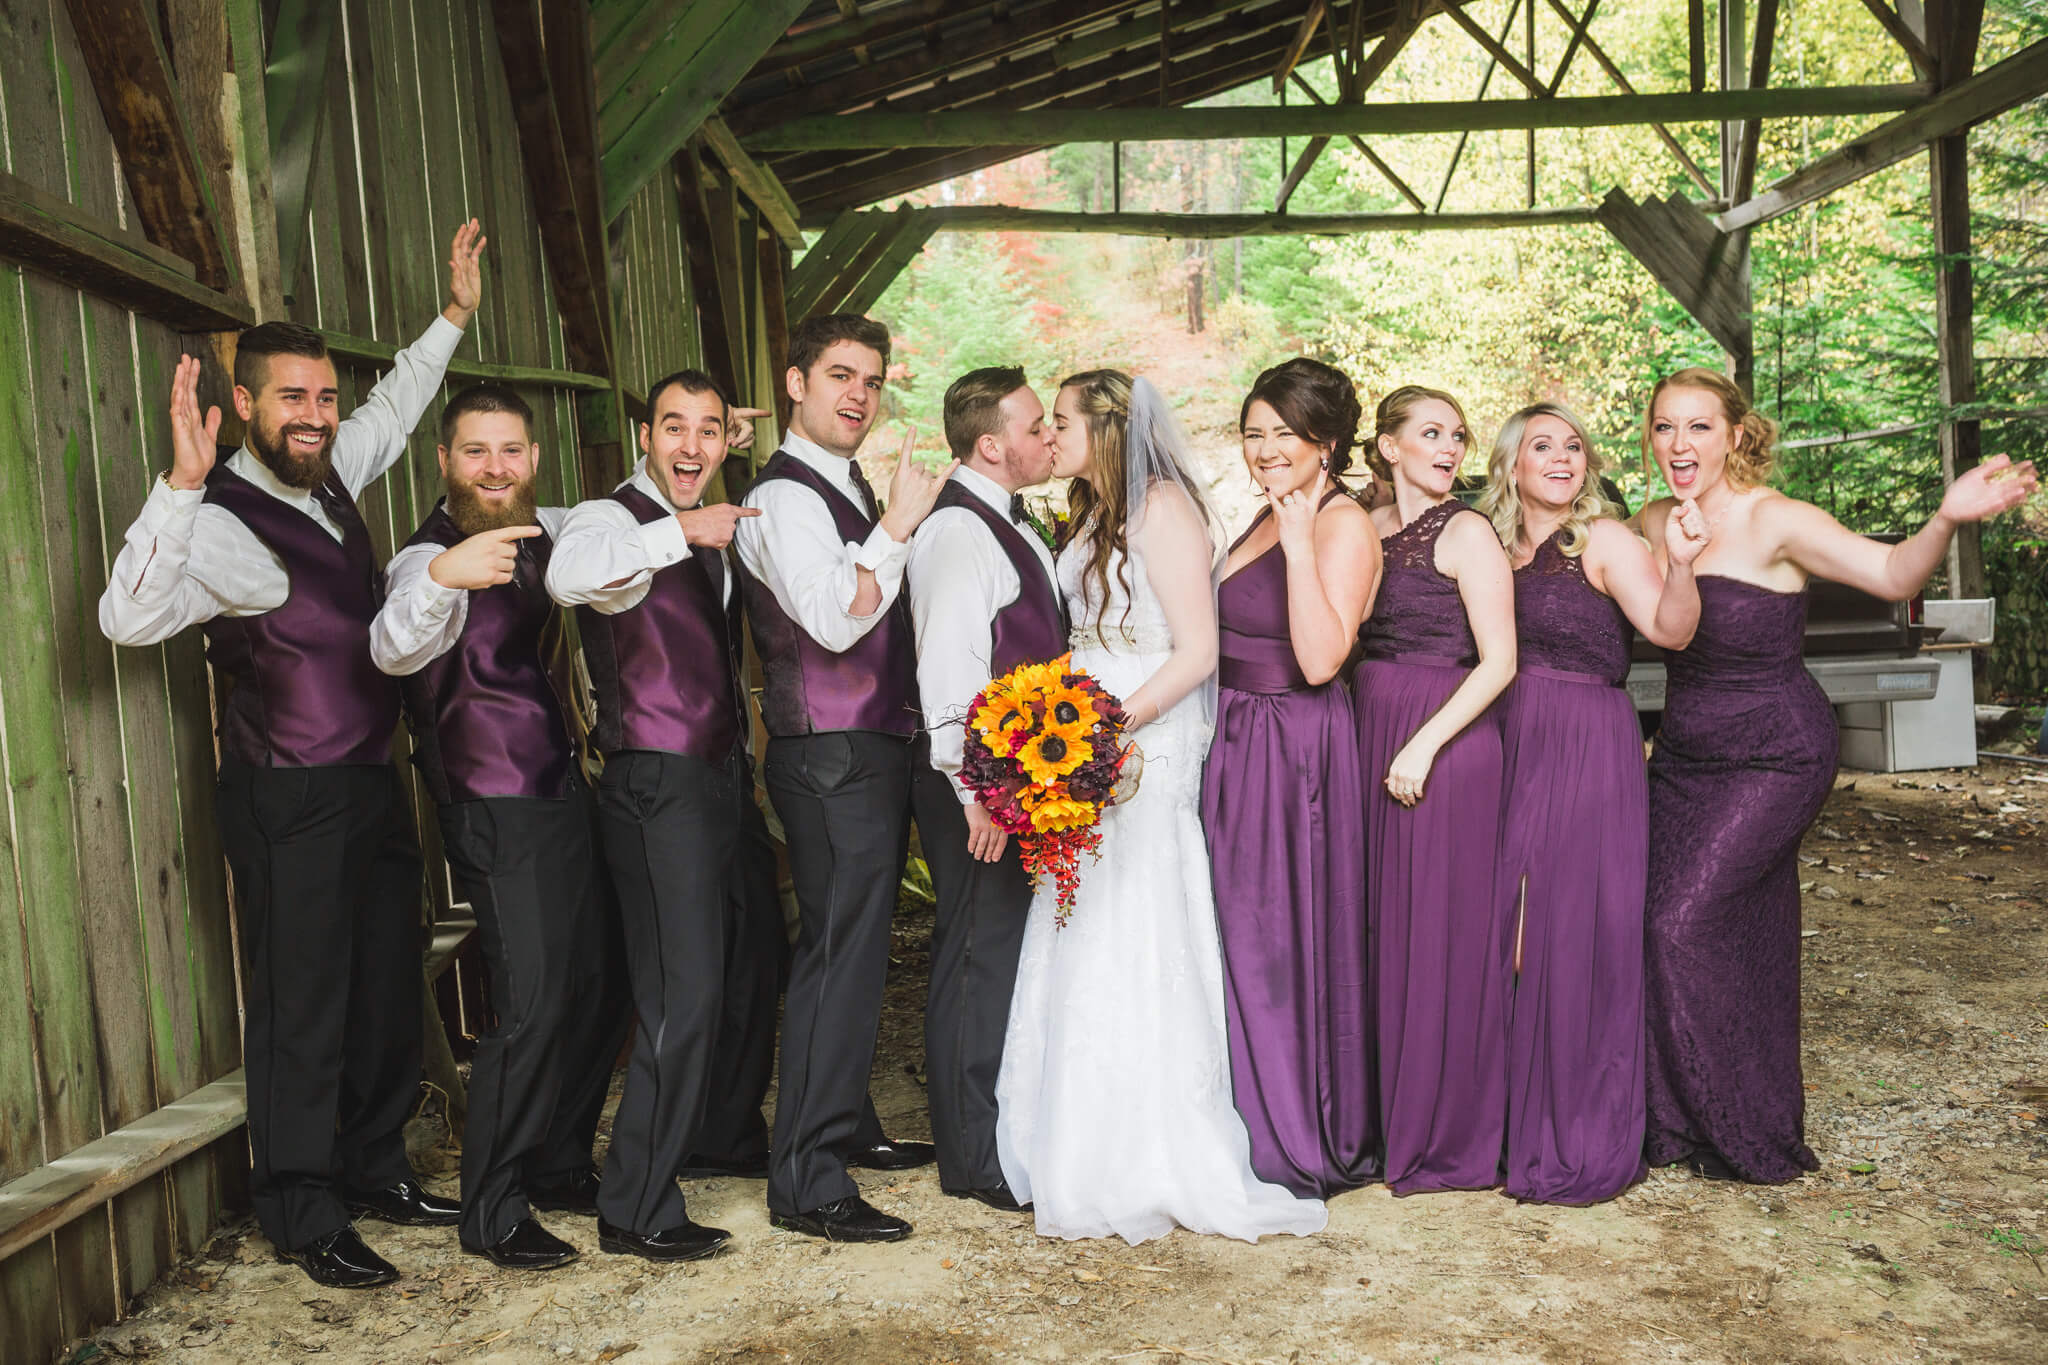 Mitcham's Barn Wedding-91.JPG